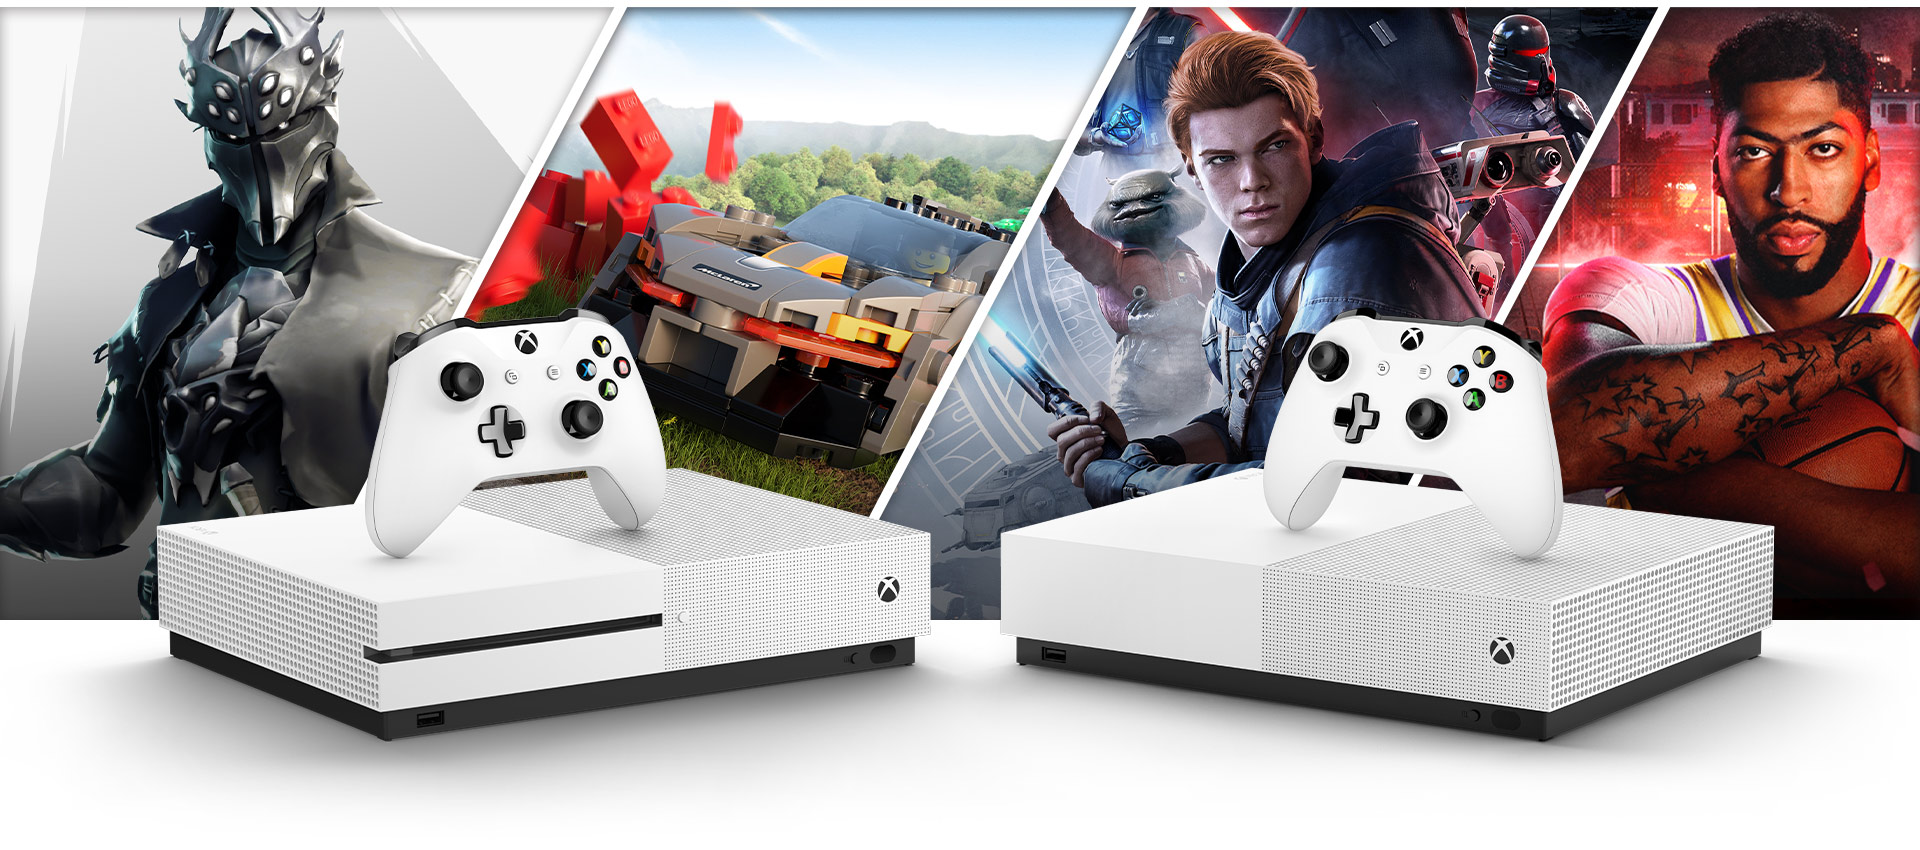 Pelien Fortnite, Forza Horizon 4, Star Wars Jedi: Fallen Order and NBA 2K20 grafiikkaa Xbox One S- ja Xbox One S All Digital Edition ‑laitteiden taustalla